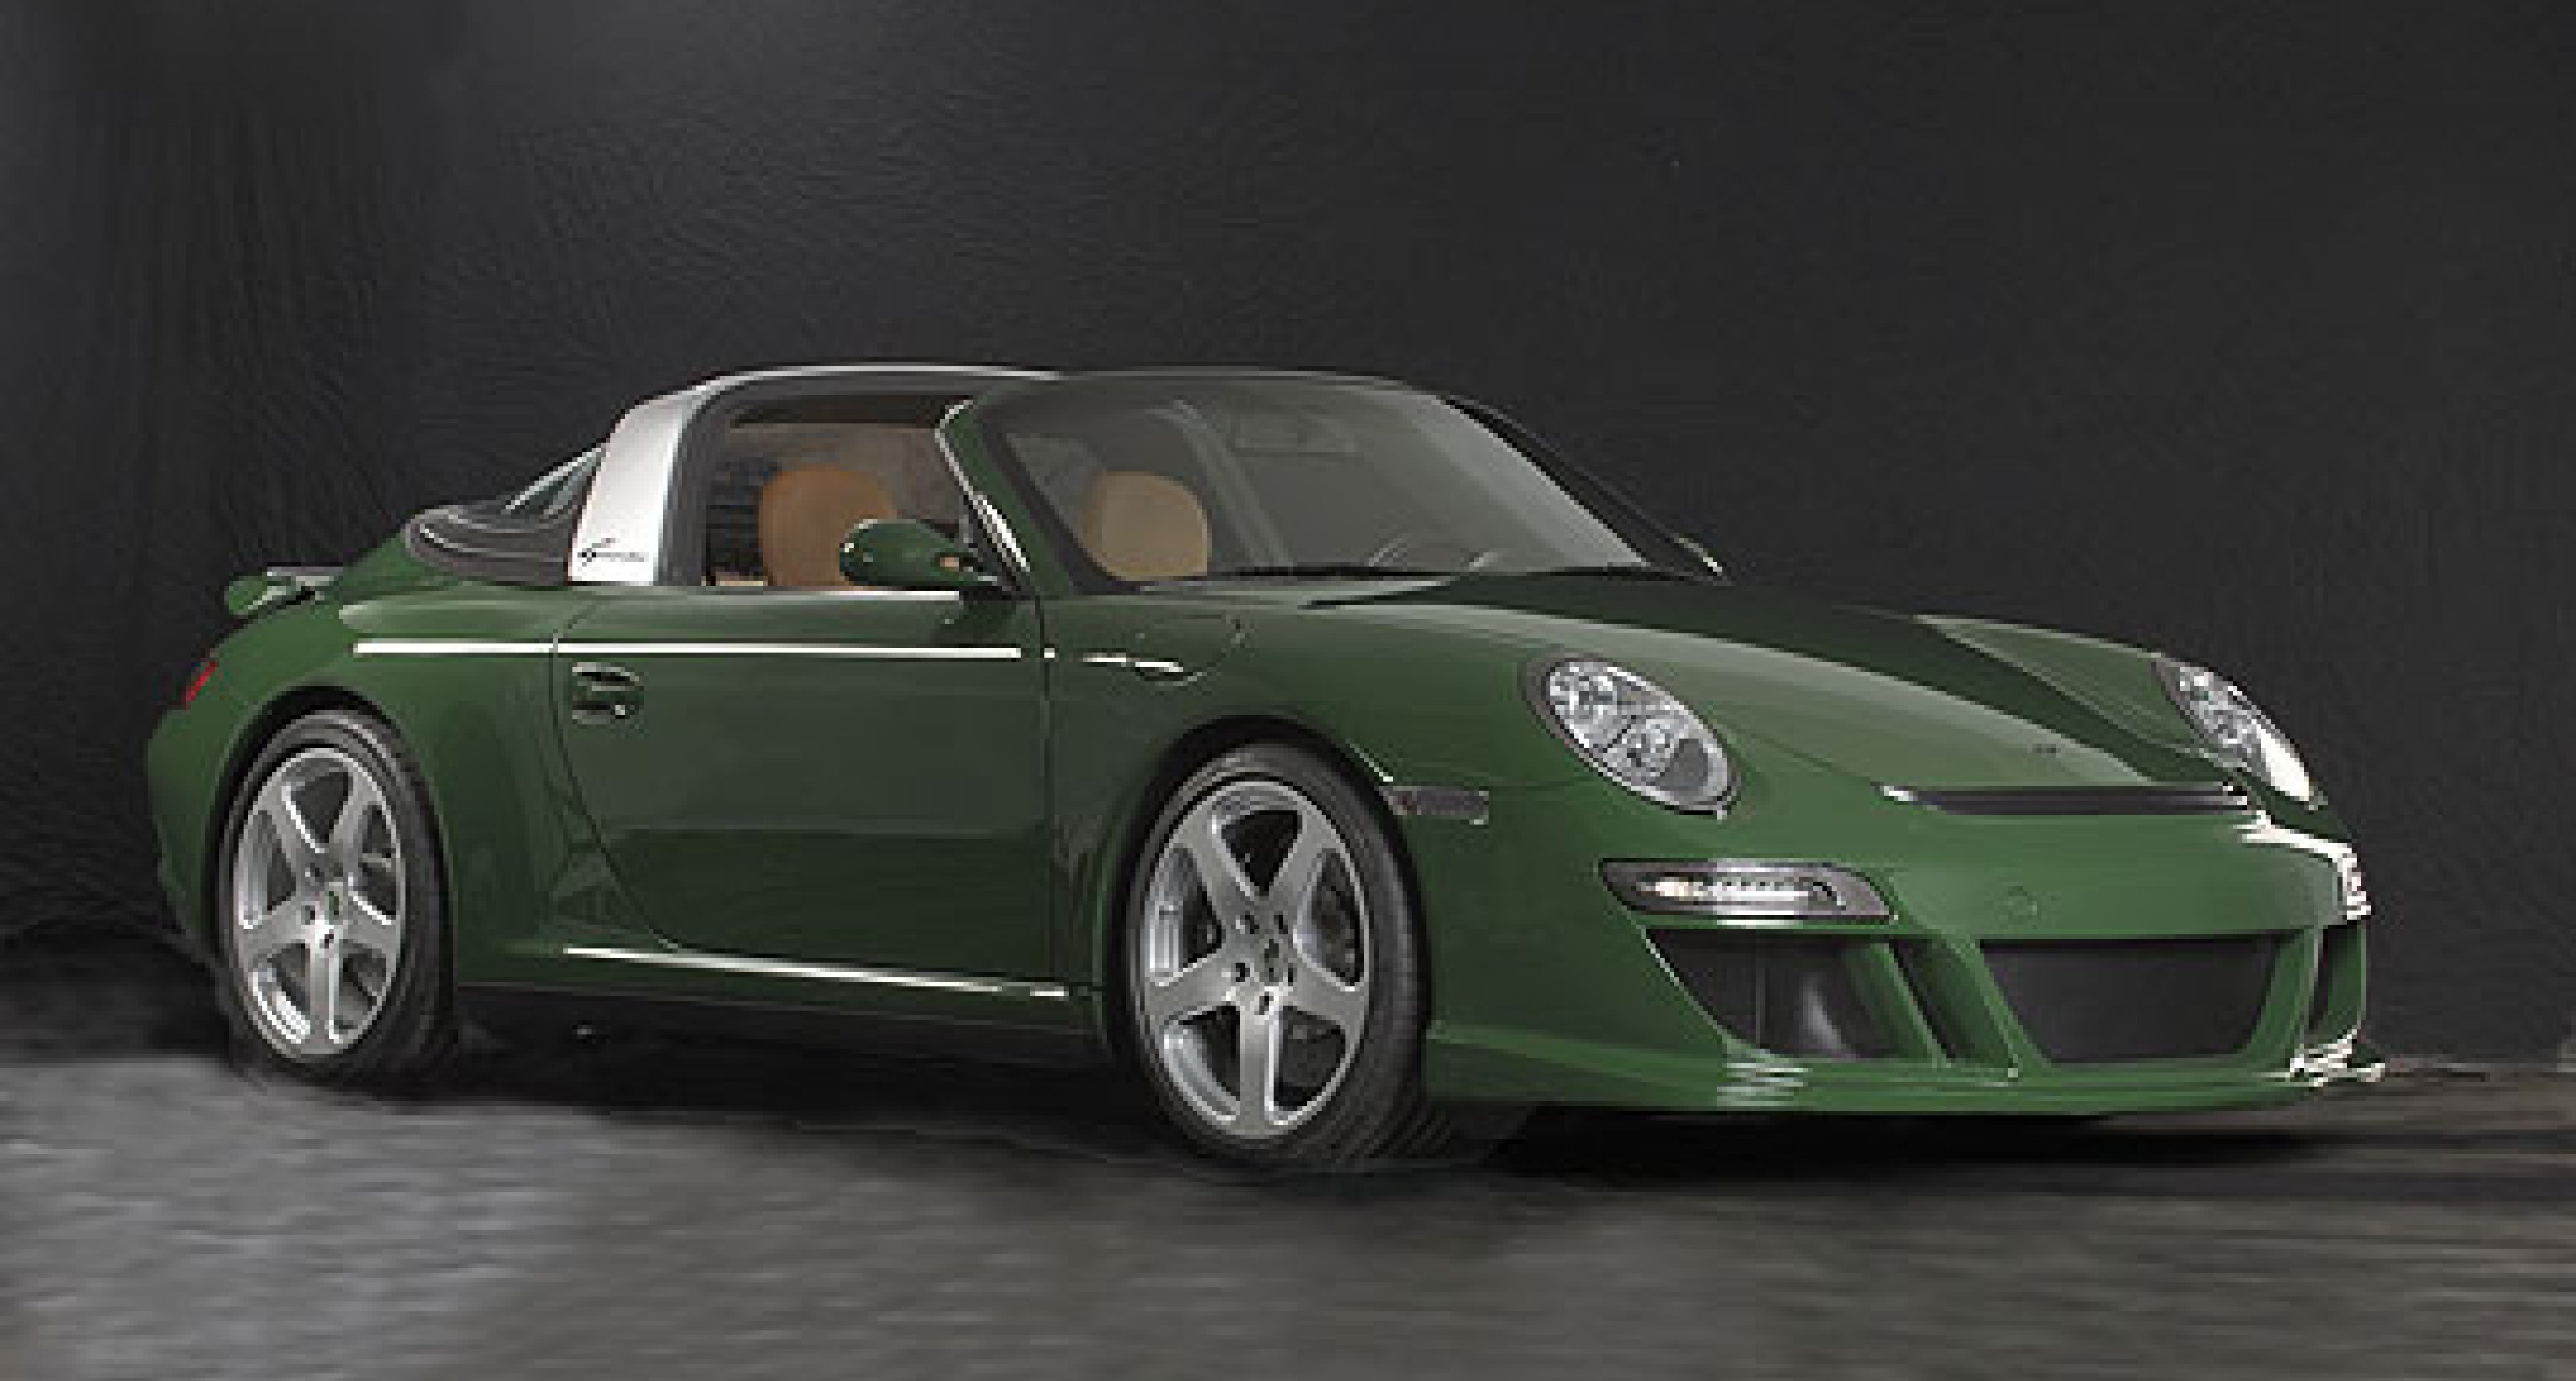 eRuf Greenster: the Electric Green 911